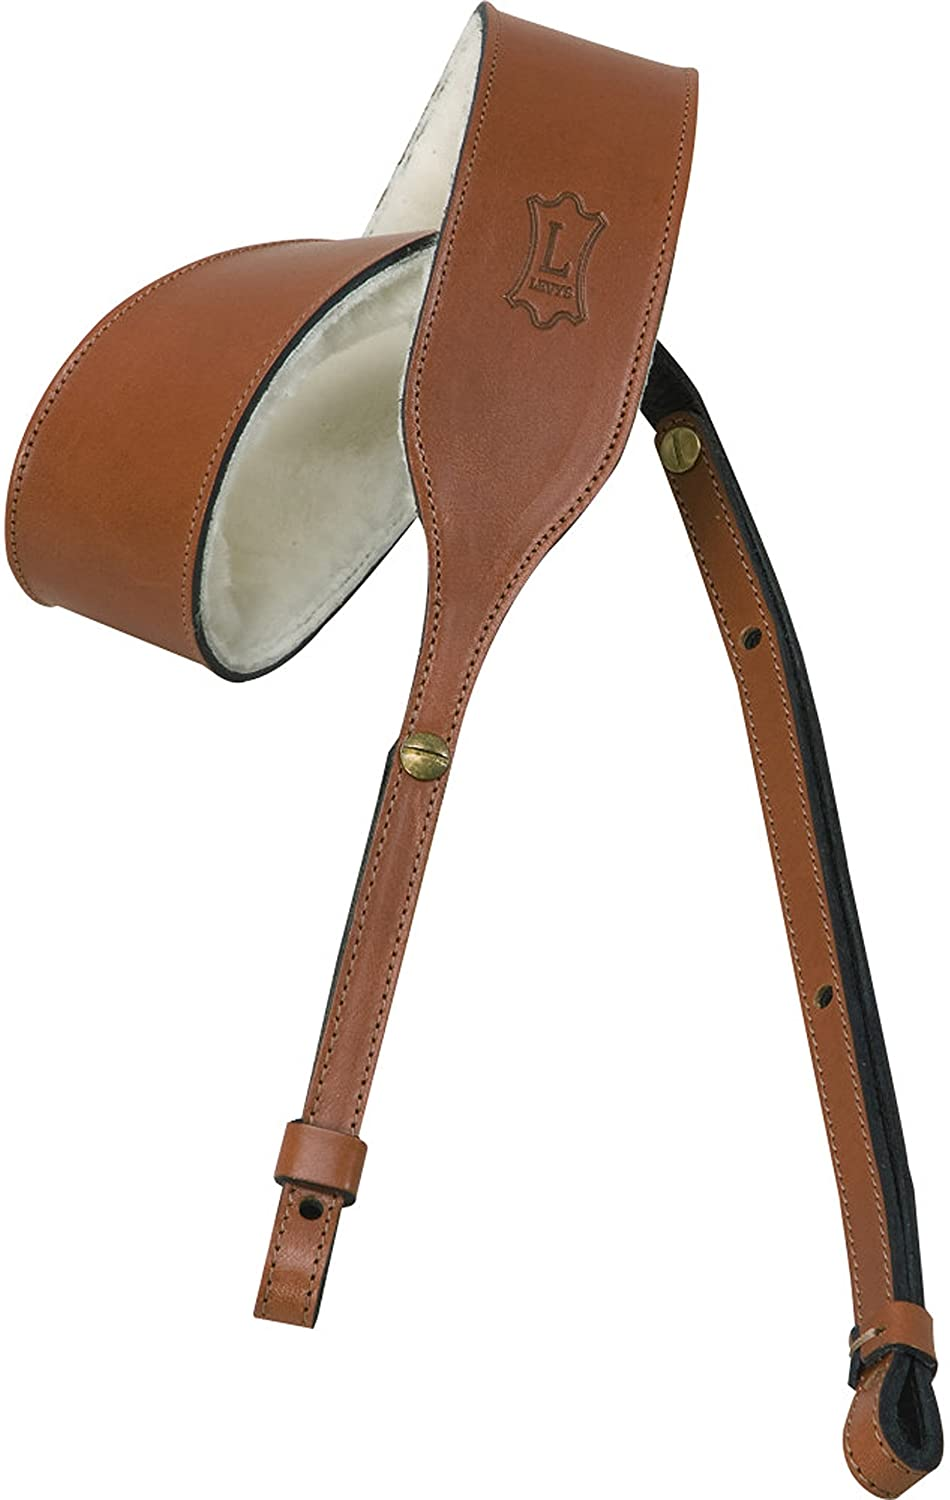 Levy's Leathers PMB32-WAL Veg-Tan Leather Banjo Strap with Sheepskin, Walnut